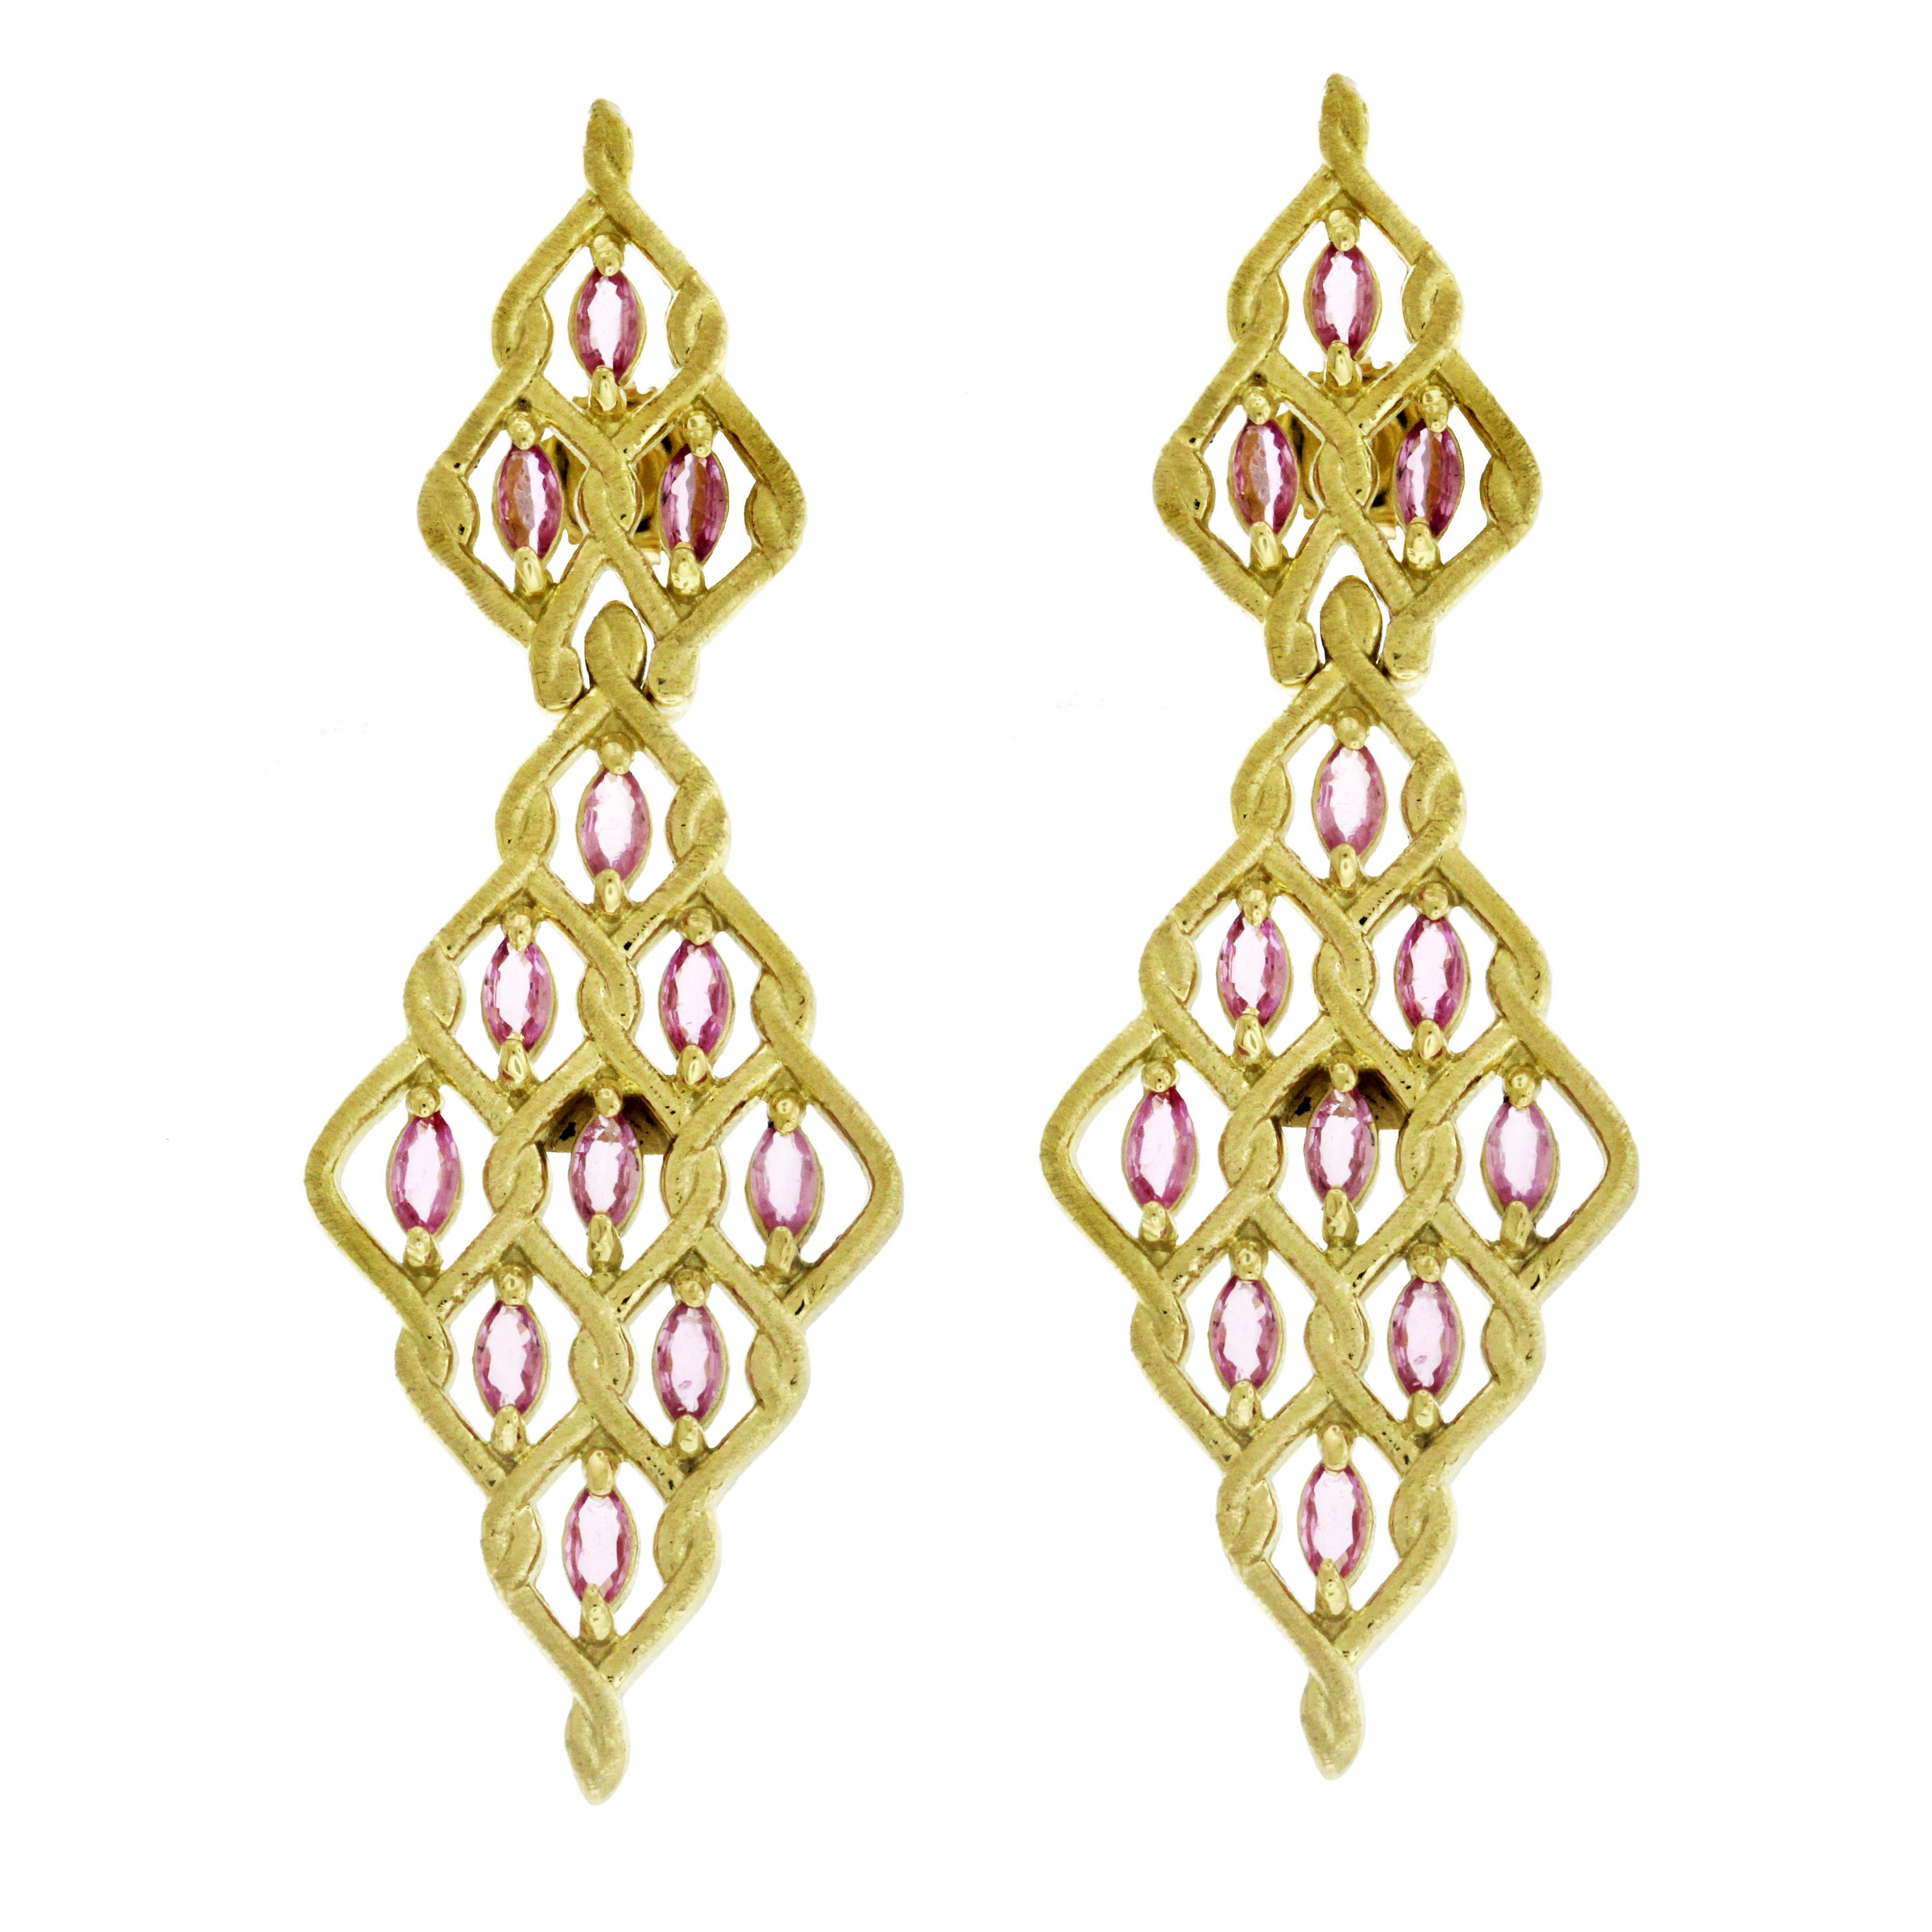 Stambolian Yellow Gold Drop Earrings with Marquise Pink Sapphires